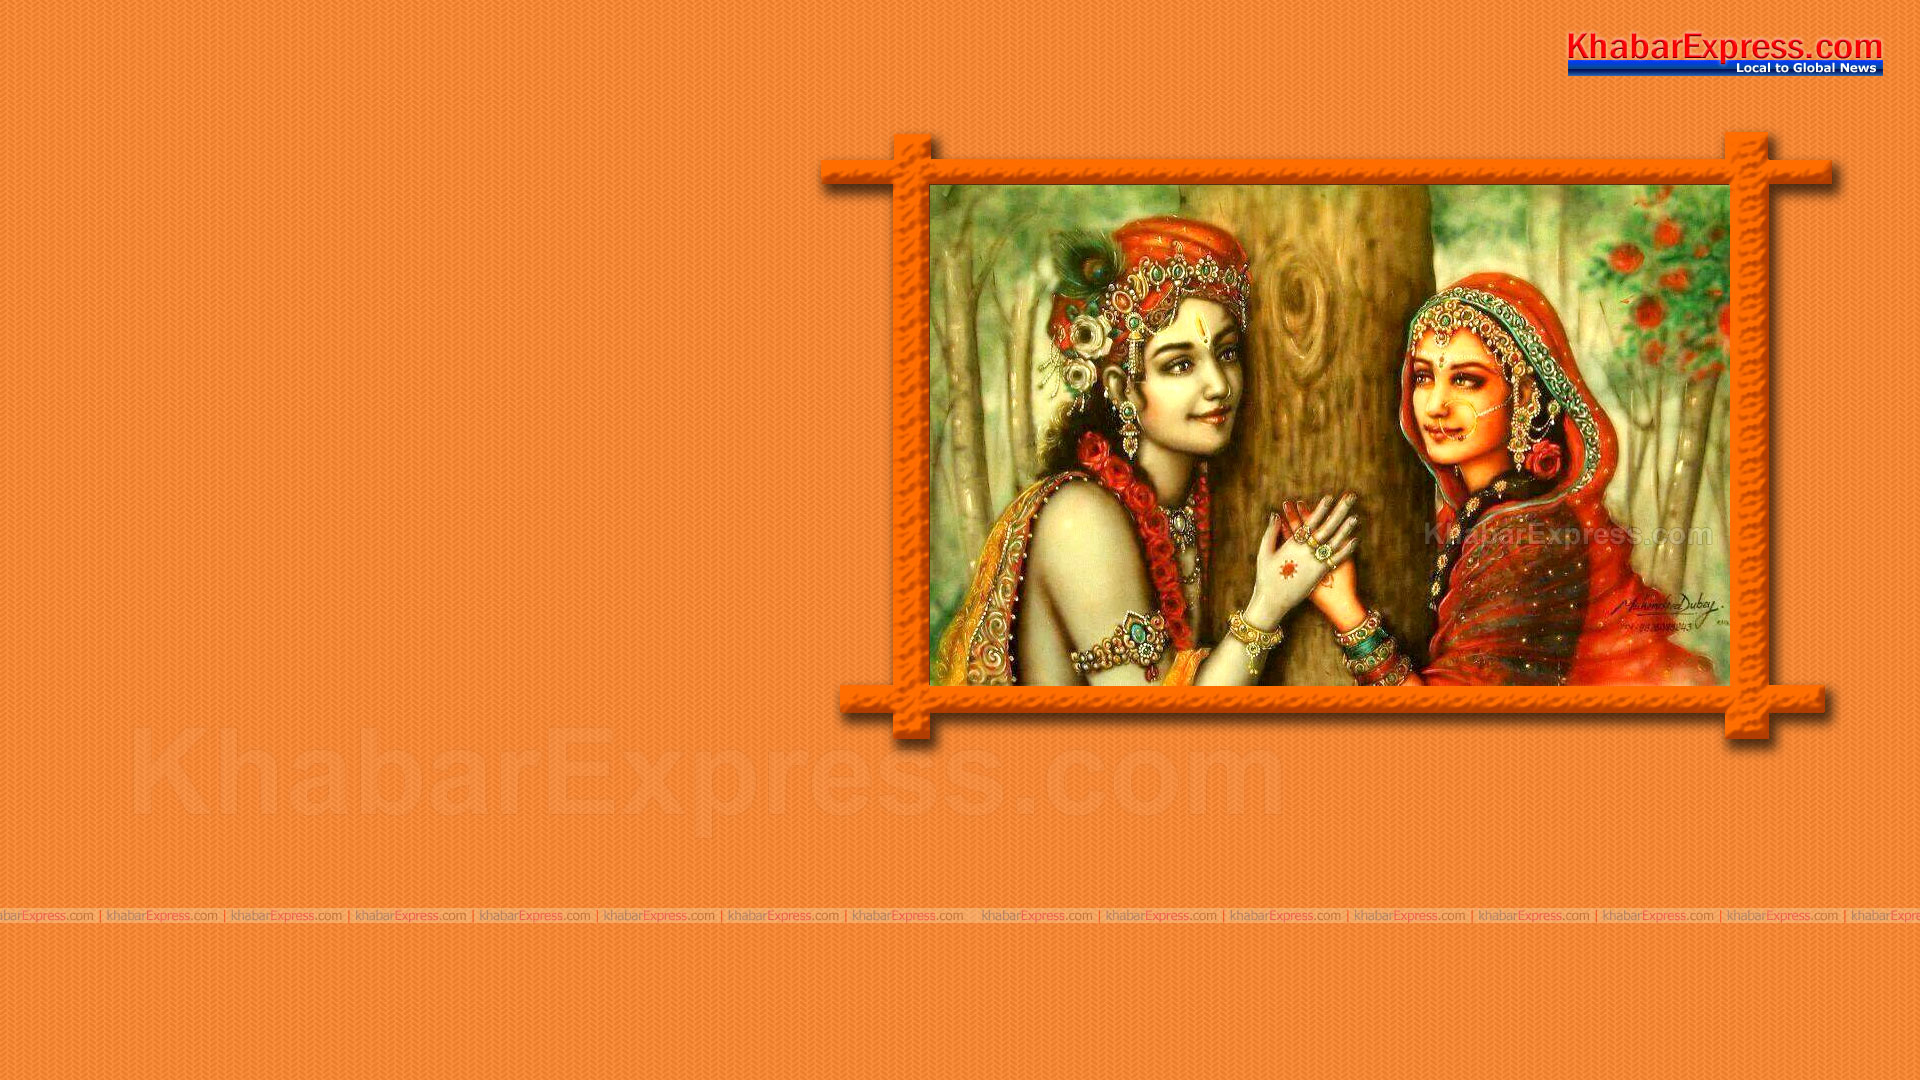 Radha and Krishna around a Tree image in Wall Frame